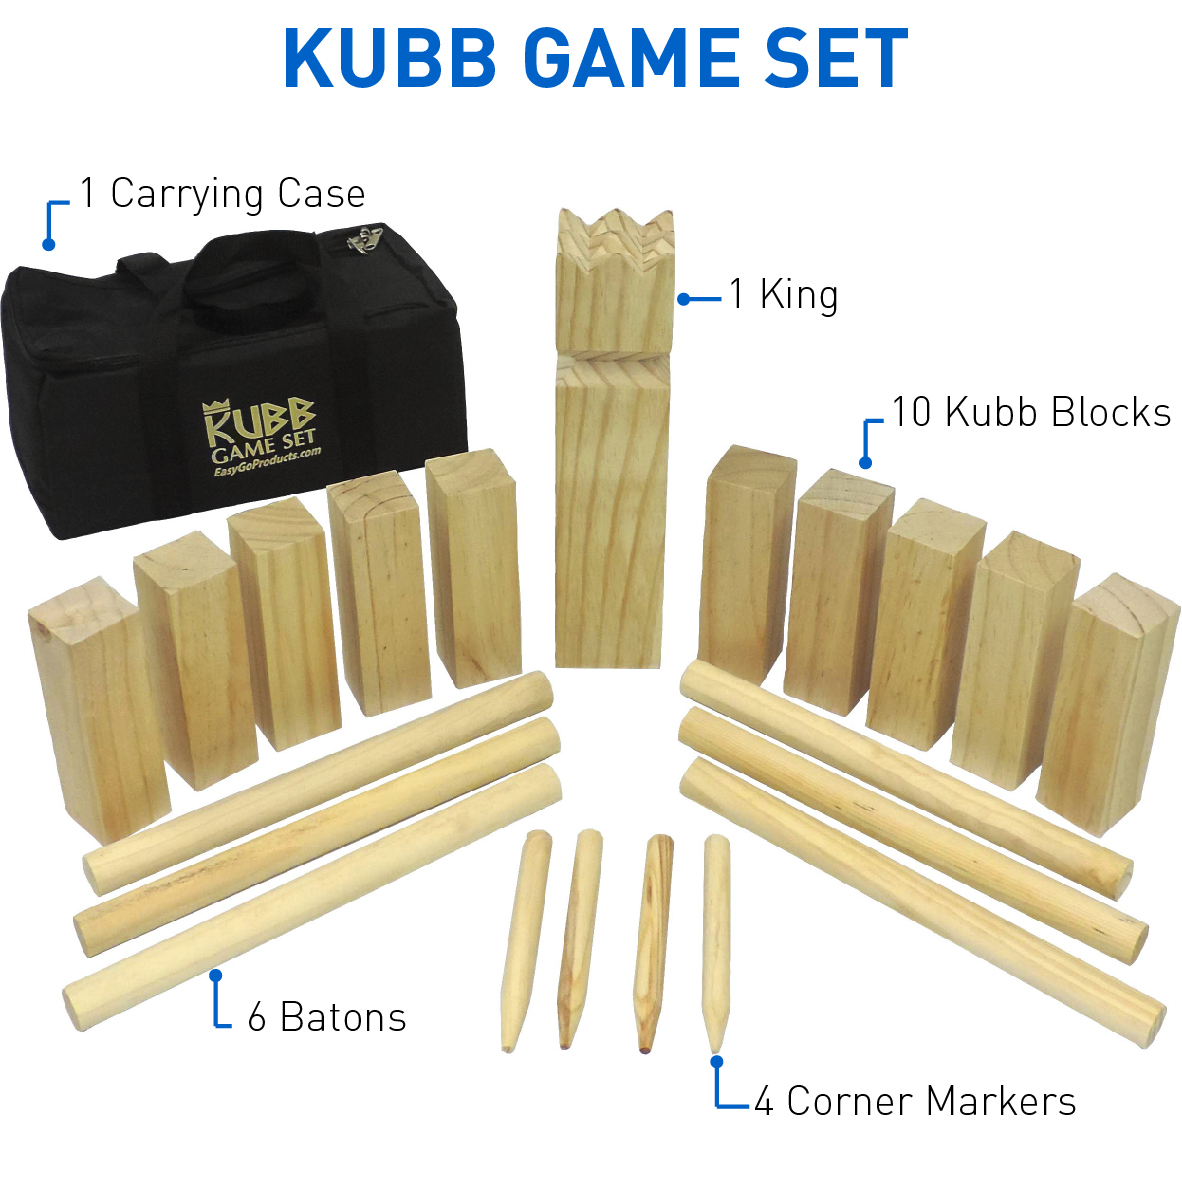 Kubb The Viking Wooden Outdoor Lawn Game  1 King, 10 Kubb Blocks, 6 Long Batons, 4 Corner Markers & Carrying Bag